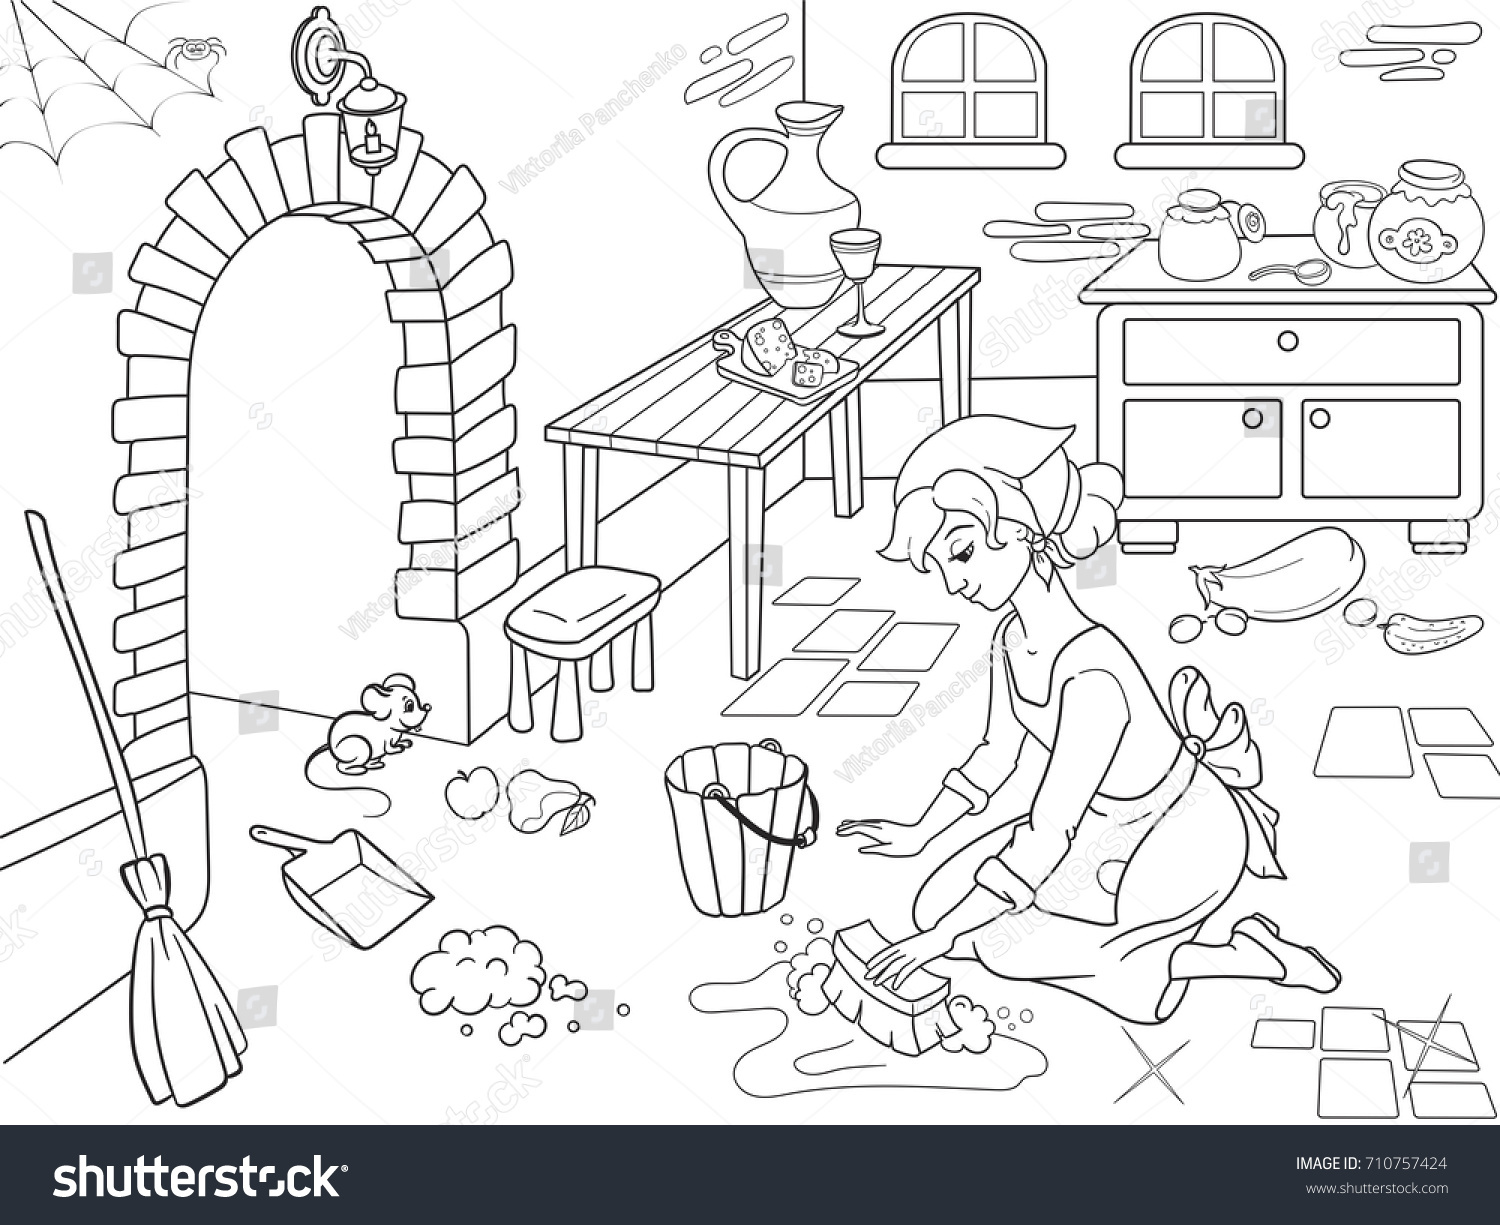 Coloring book kitchen - Cinderella Cleans Up The Kitchen The Girl On The Floor Around The Mess